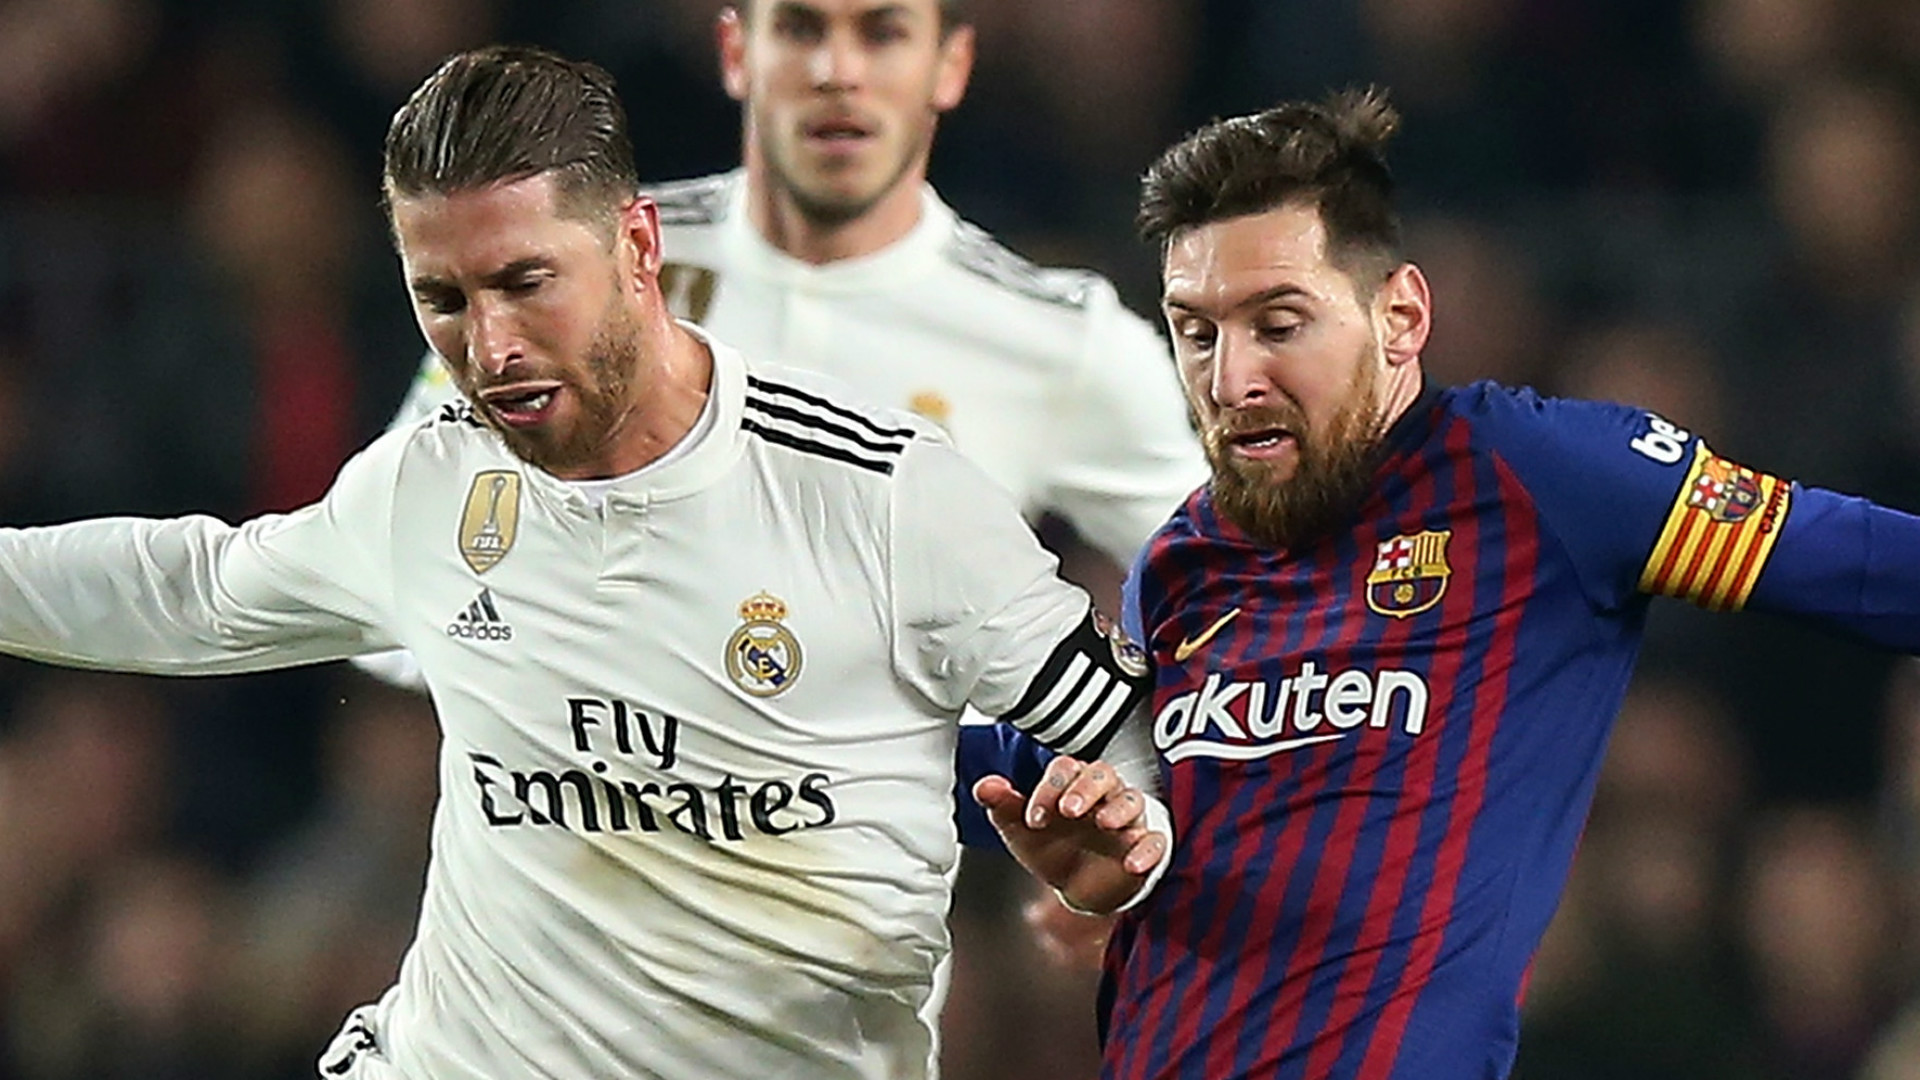 Barcelona to host Real Madrid in first Clasico of the season on December 18